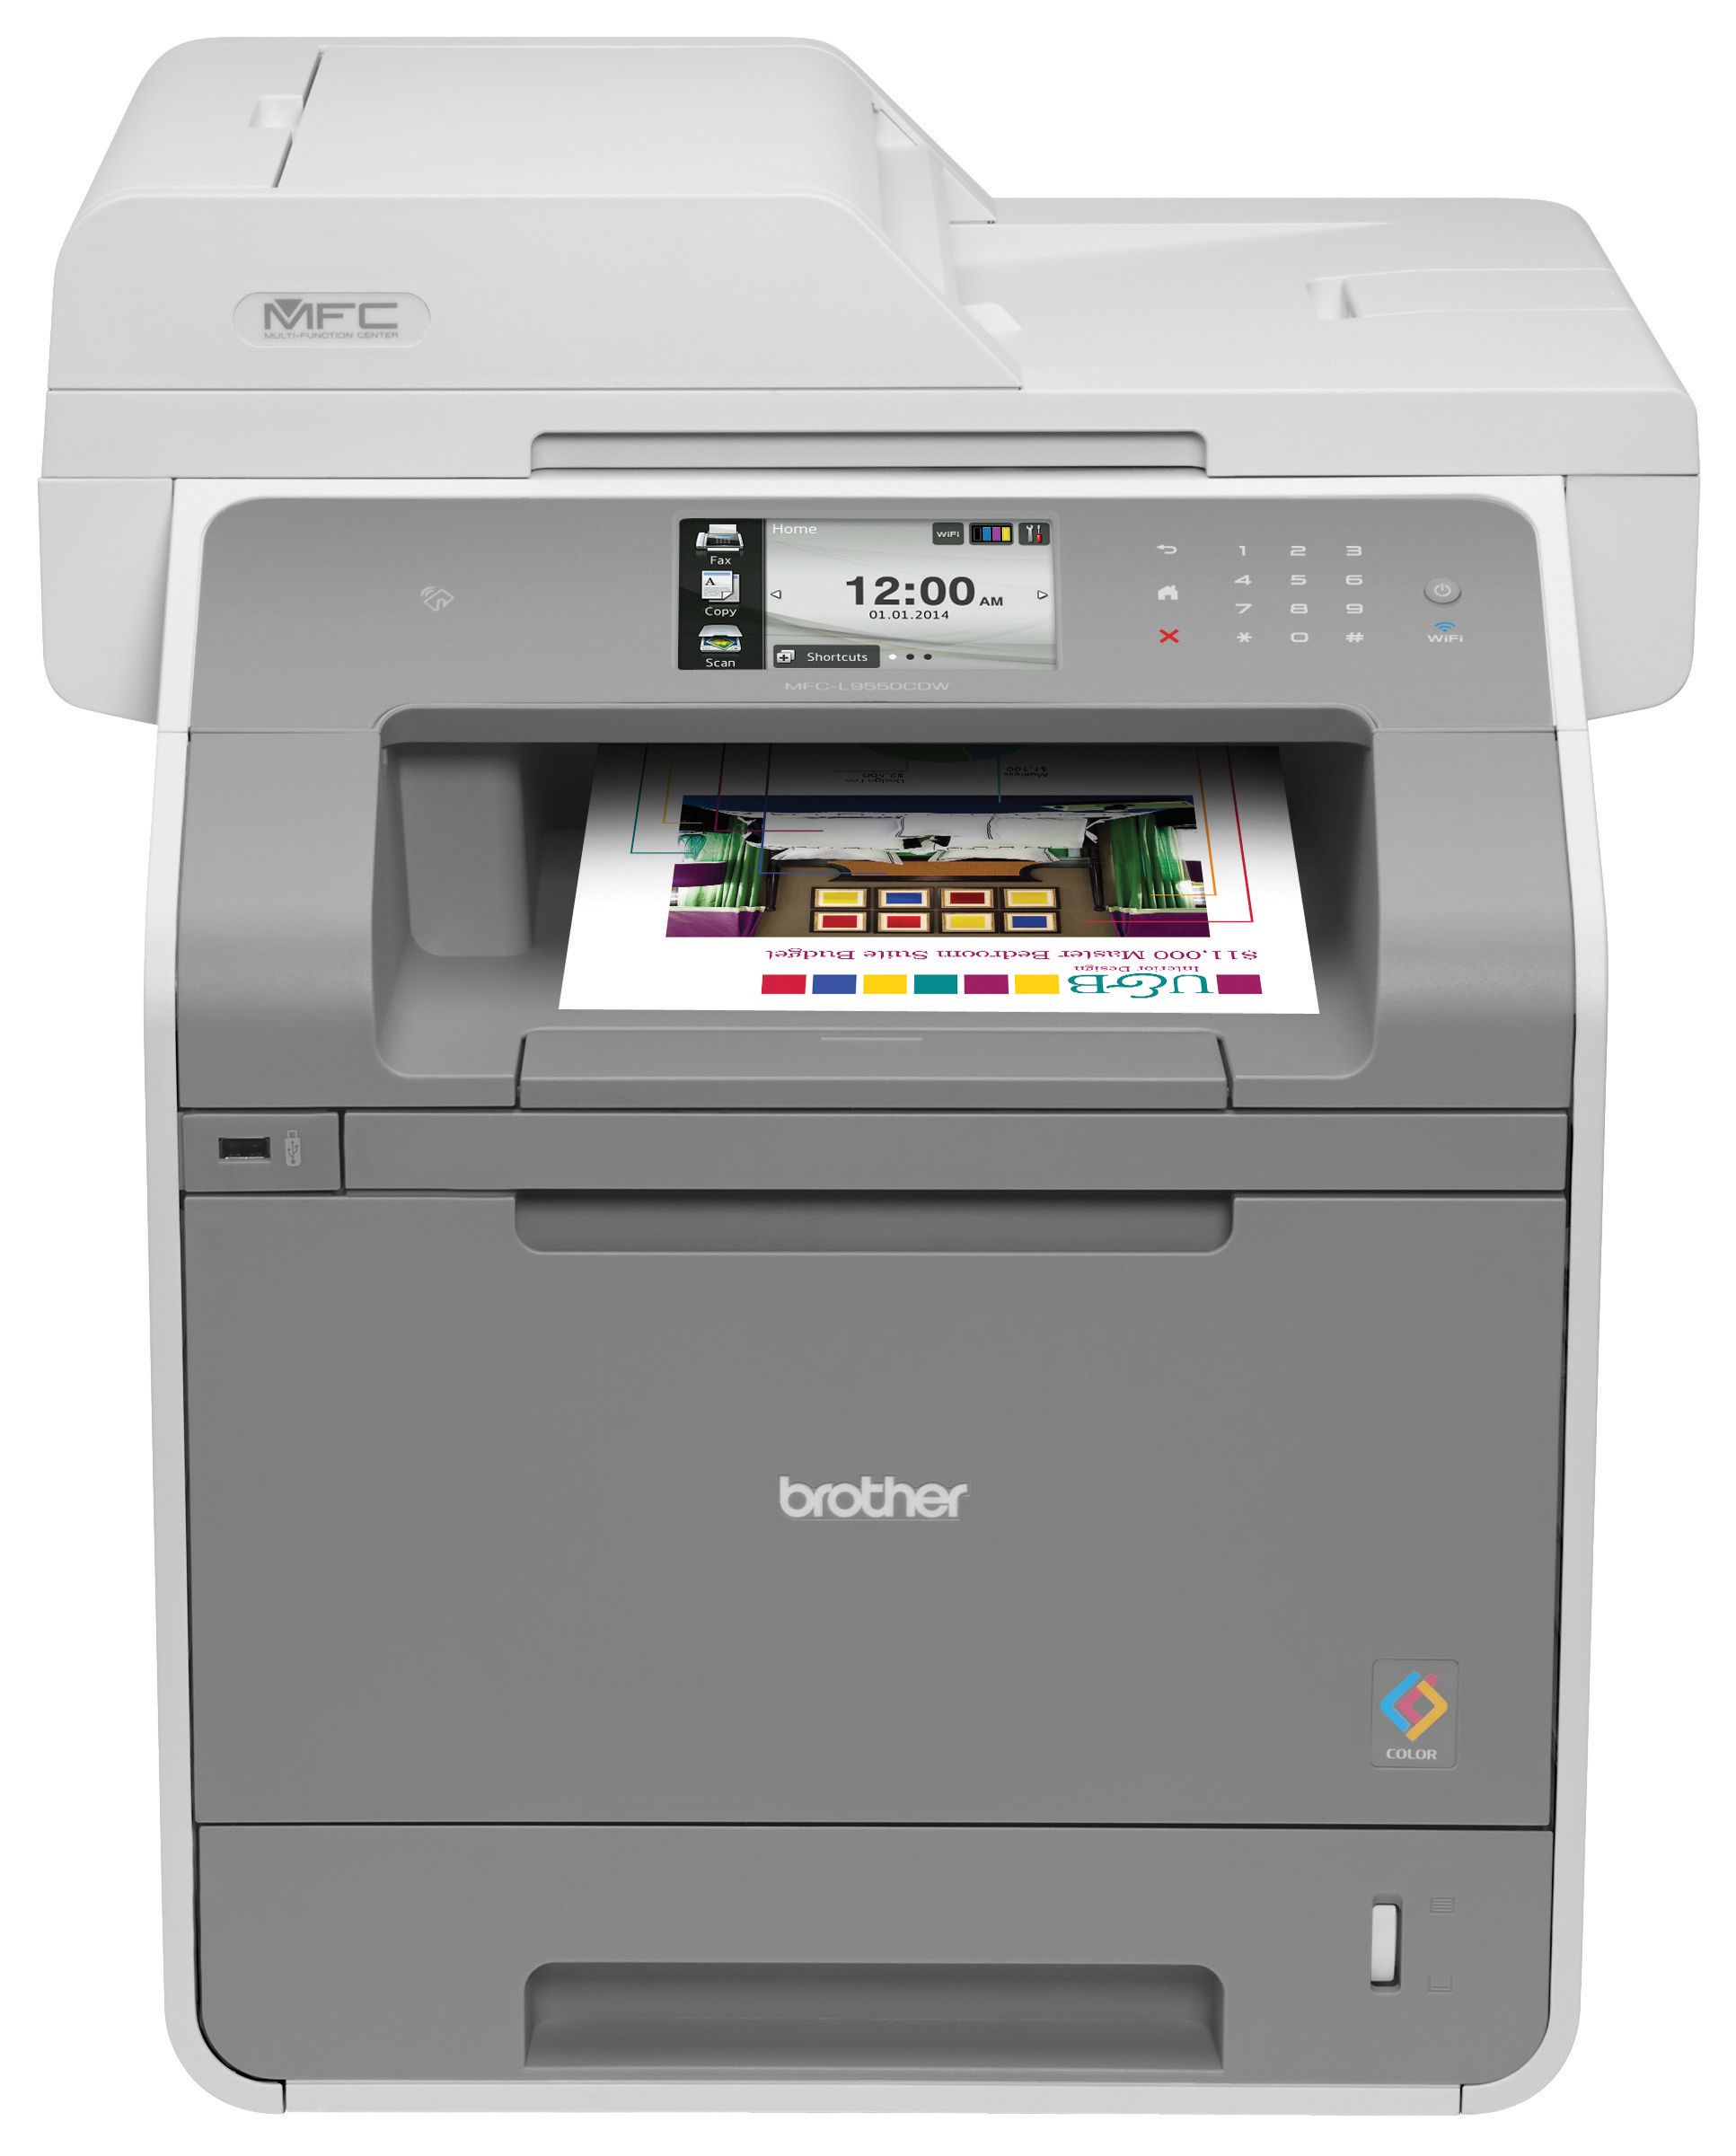 Brother Color Laser All In One Item Brtmfcl9550cdw Ideal For Mid Sized Workgroups Looking For A Color Laser All In One Brother Mfc Laser Printer Brother